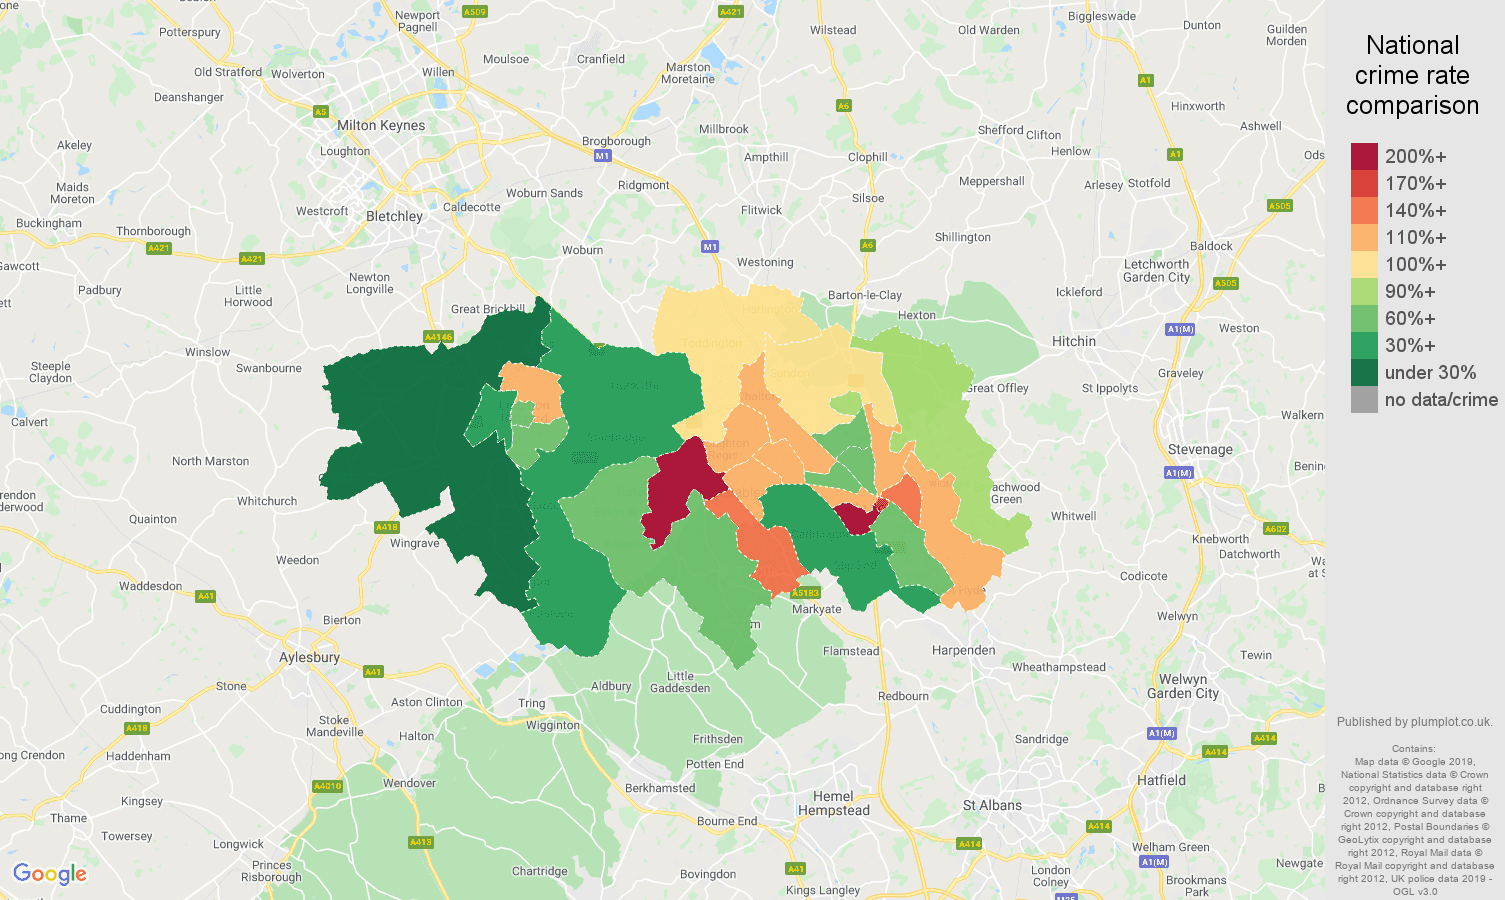 Luton other crime rate comparison map